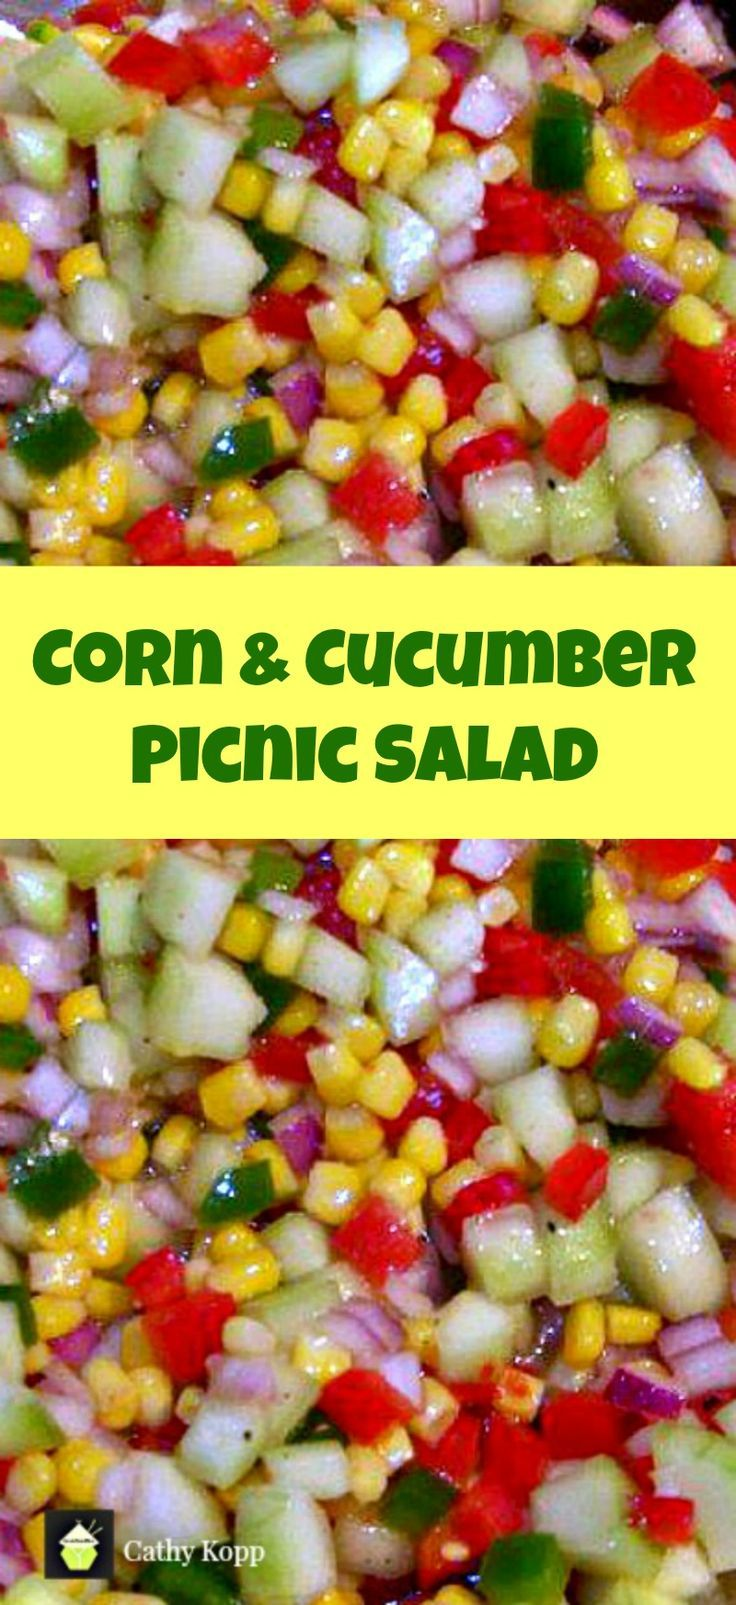 Corn & Cucumber Picnic Salad. A very simple yet great tasting salad; instead of peppers, kidney or black beans